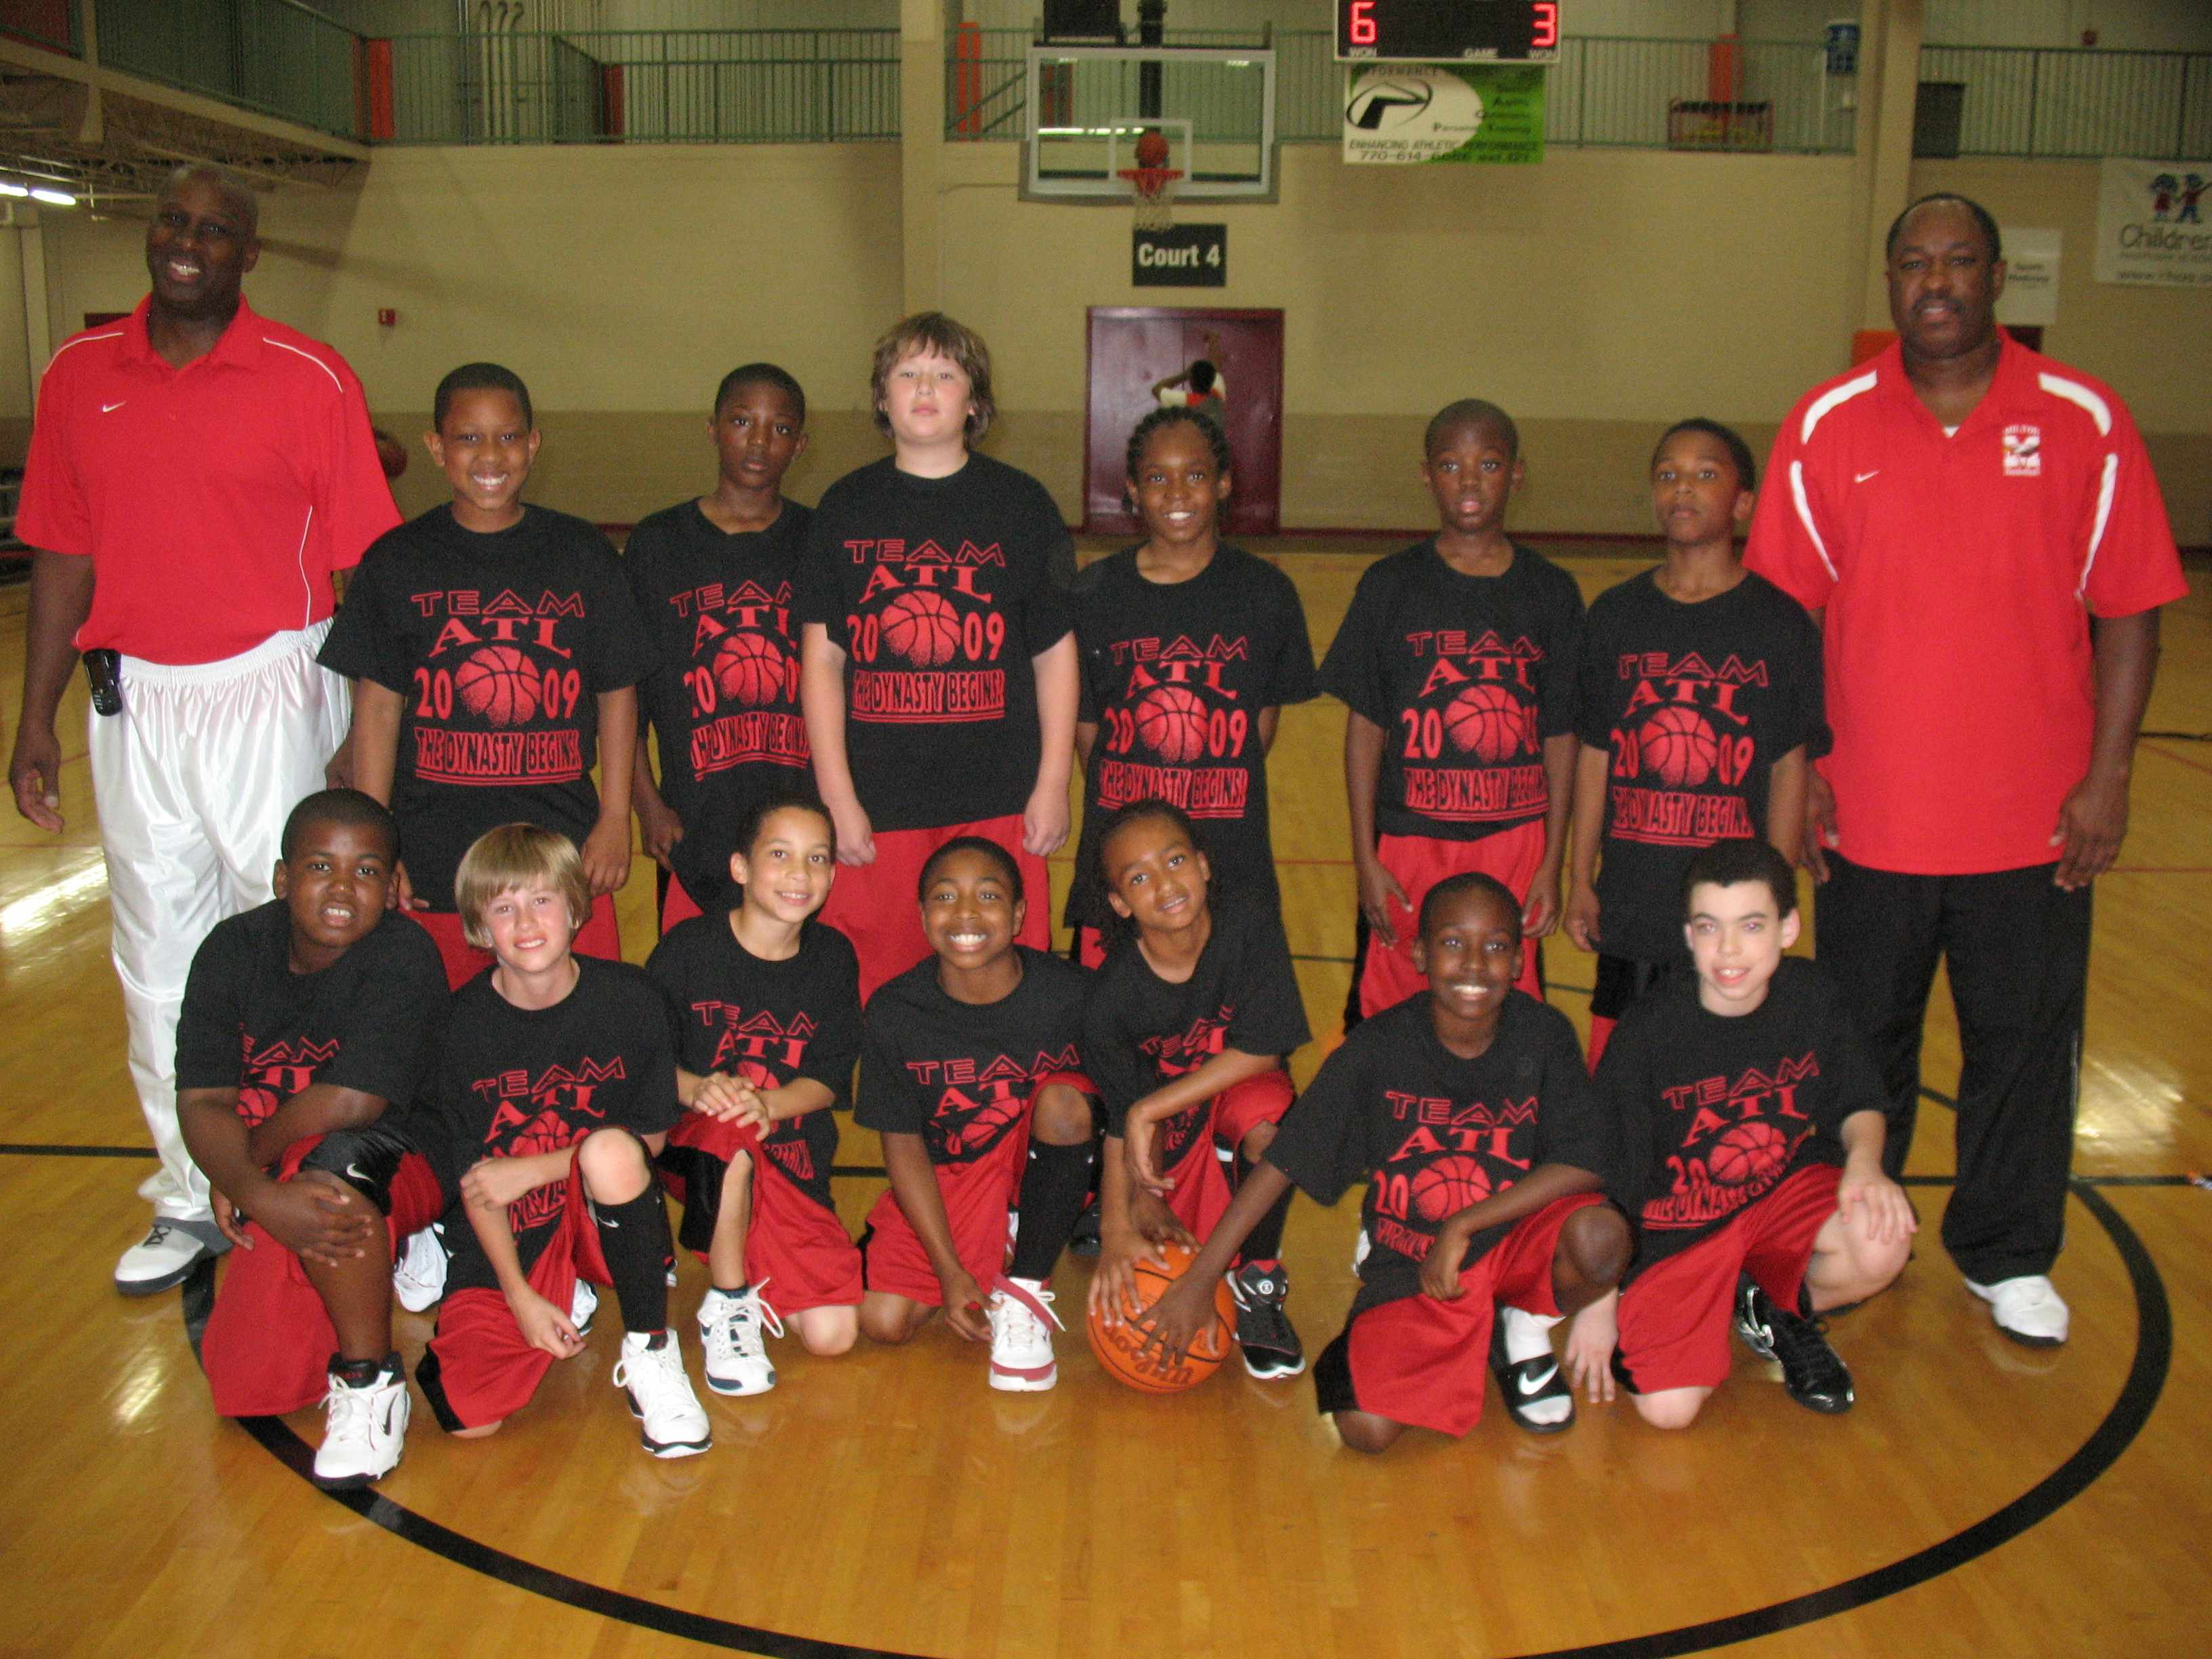 2009 Team Atl Champs